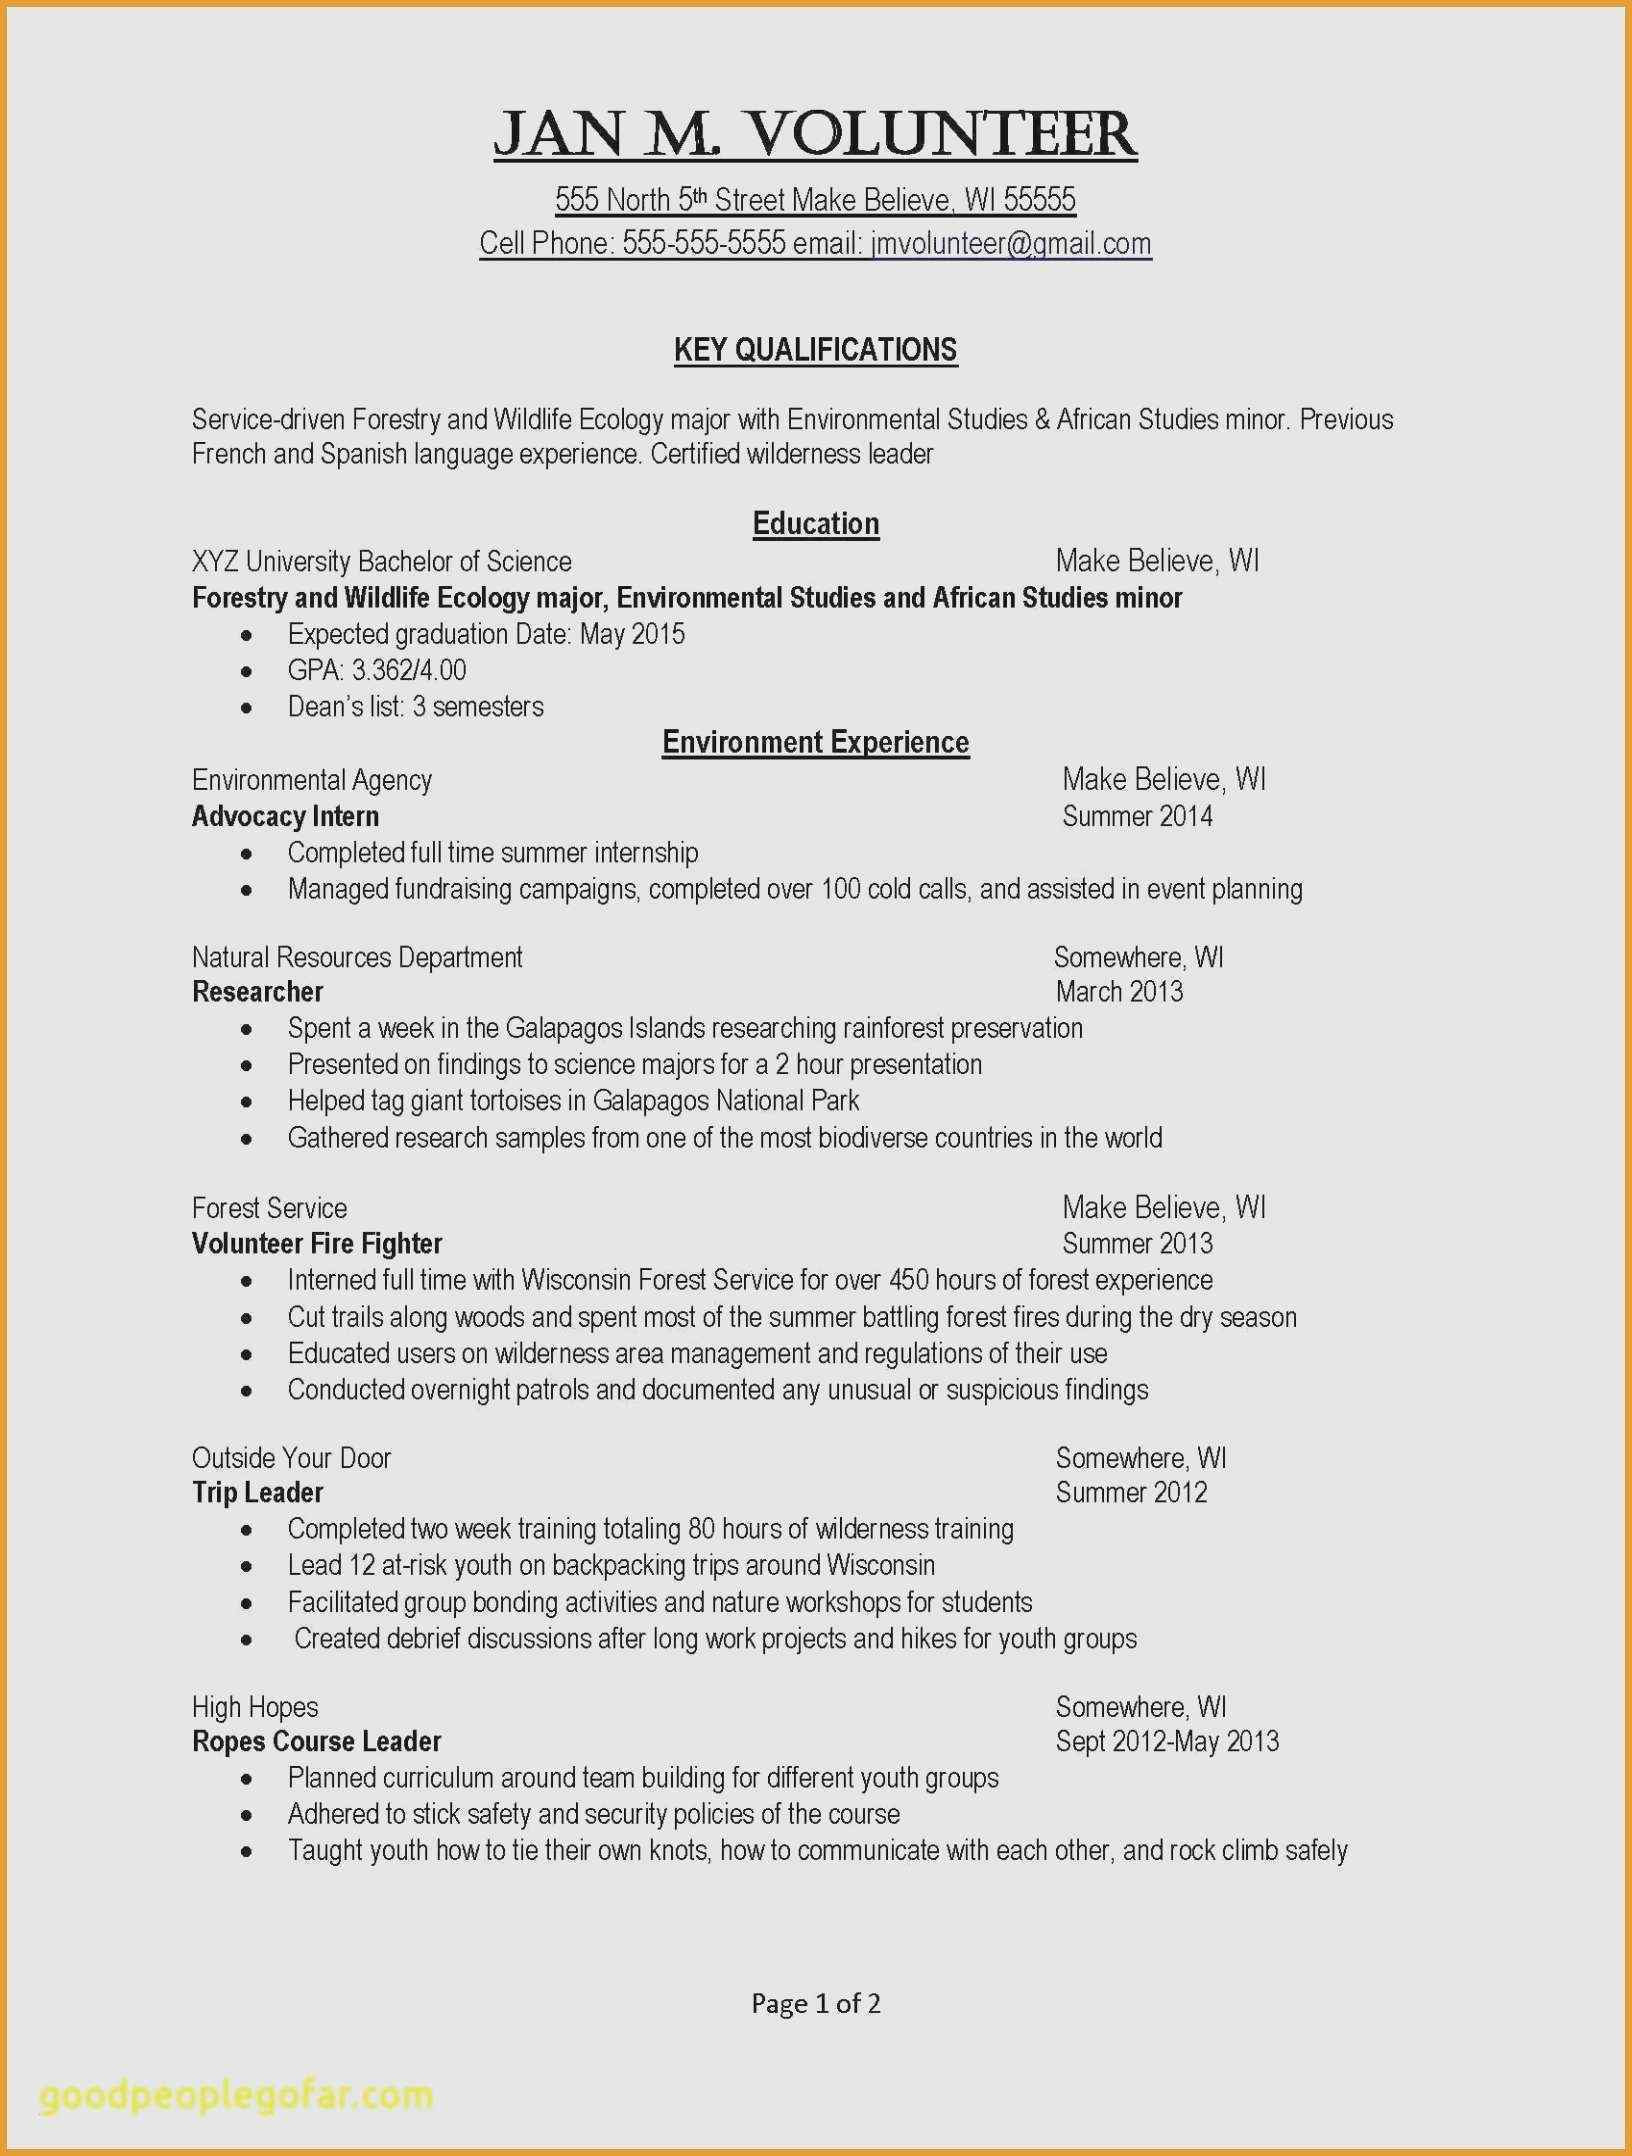 ub resume template example-Ub04 Sample Claim form Unique Fice Resume Templates Awesome Skills Resume Template 19-k